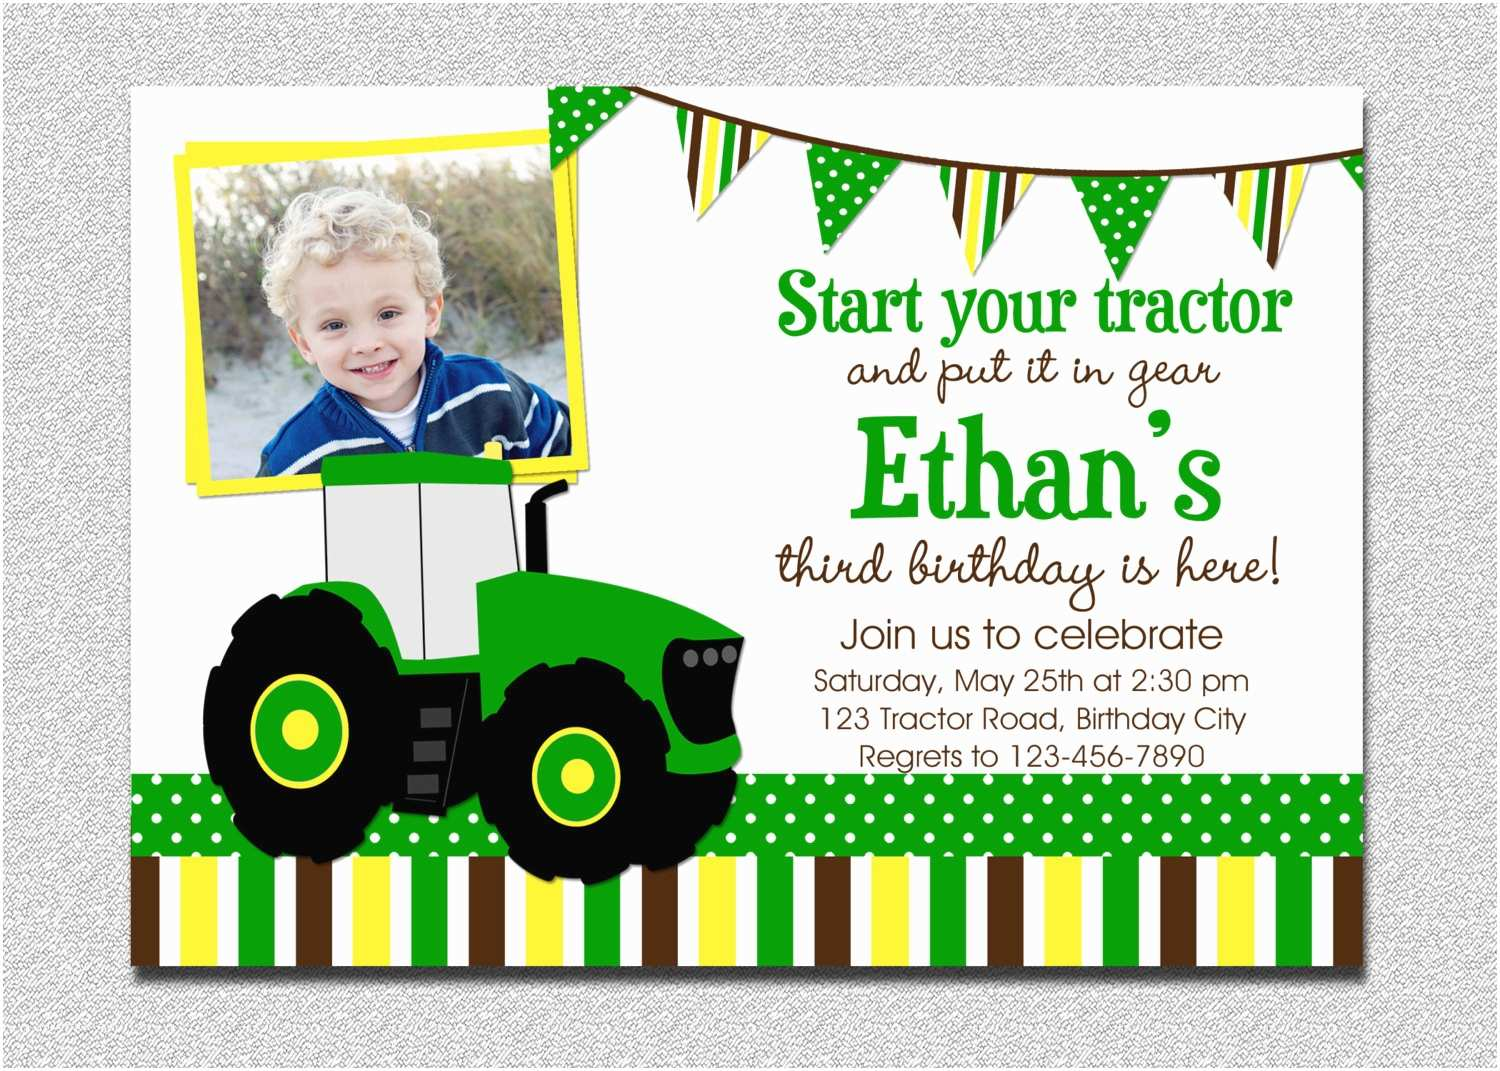 Tractor Birthday Invitations Create Tractor Birthday Invitations Free Templates